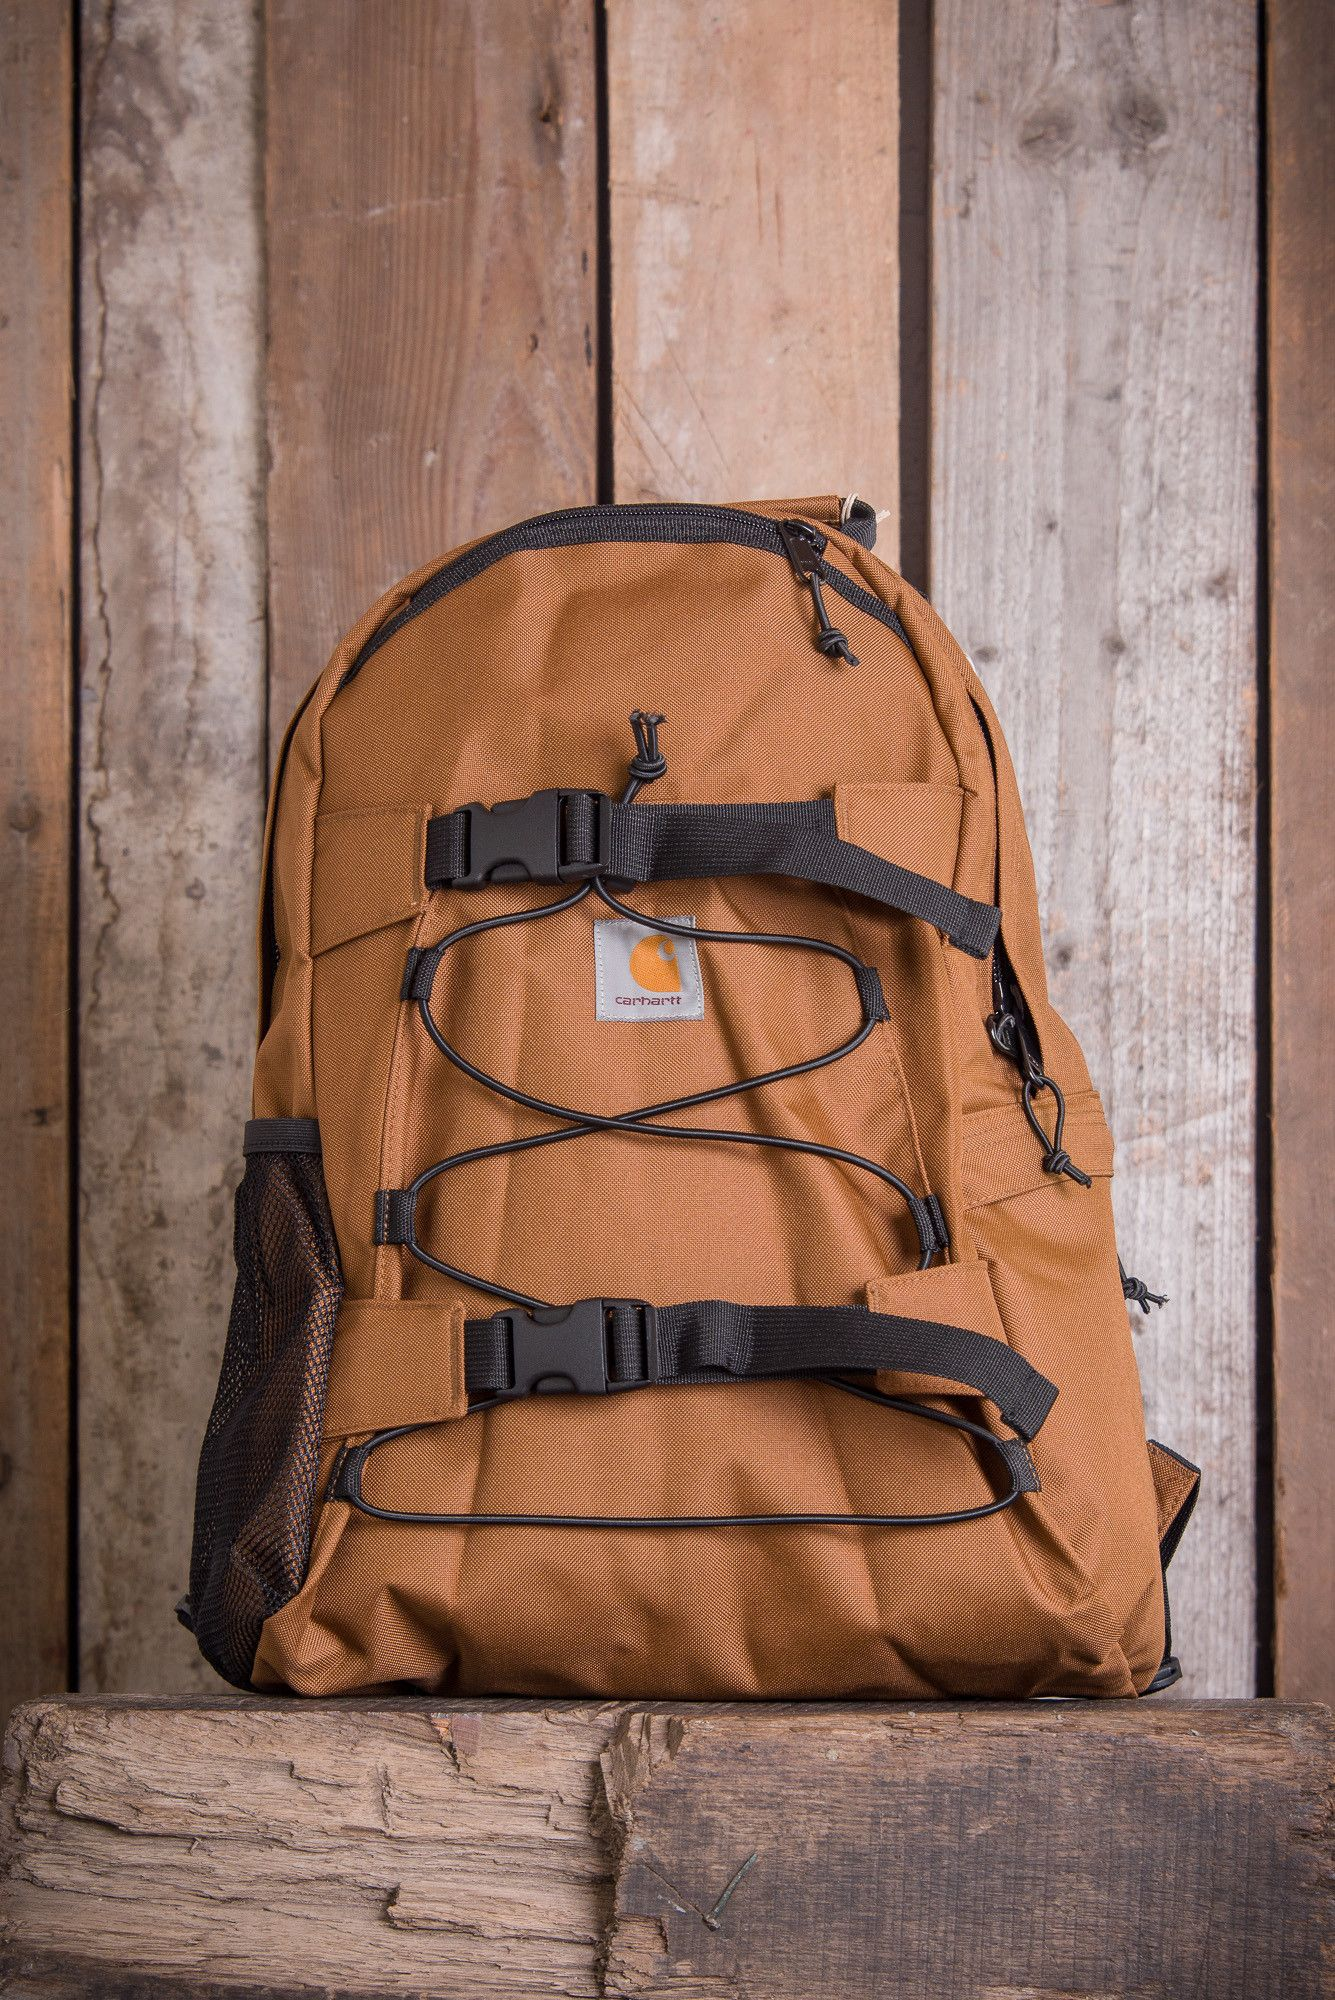 446f4f4cfc Carhartt Kickflip Backpack - Hamilton Brown - Backpacks - The Priory - 1